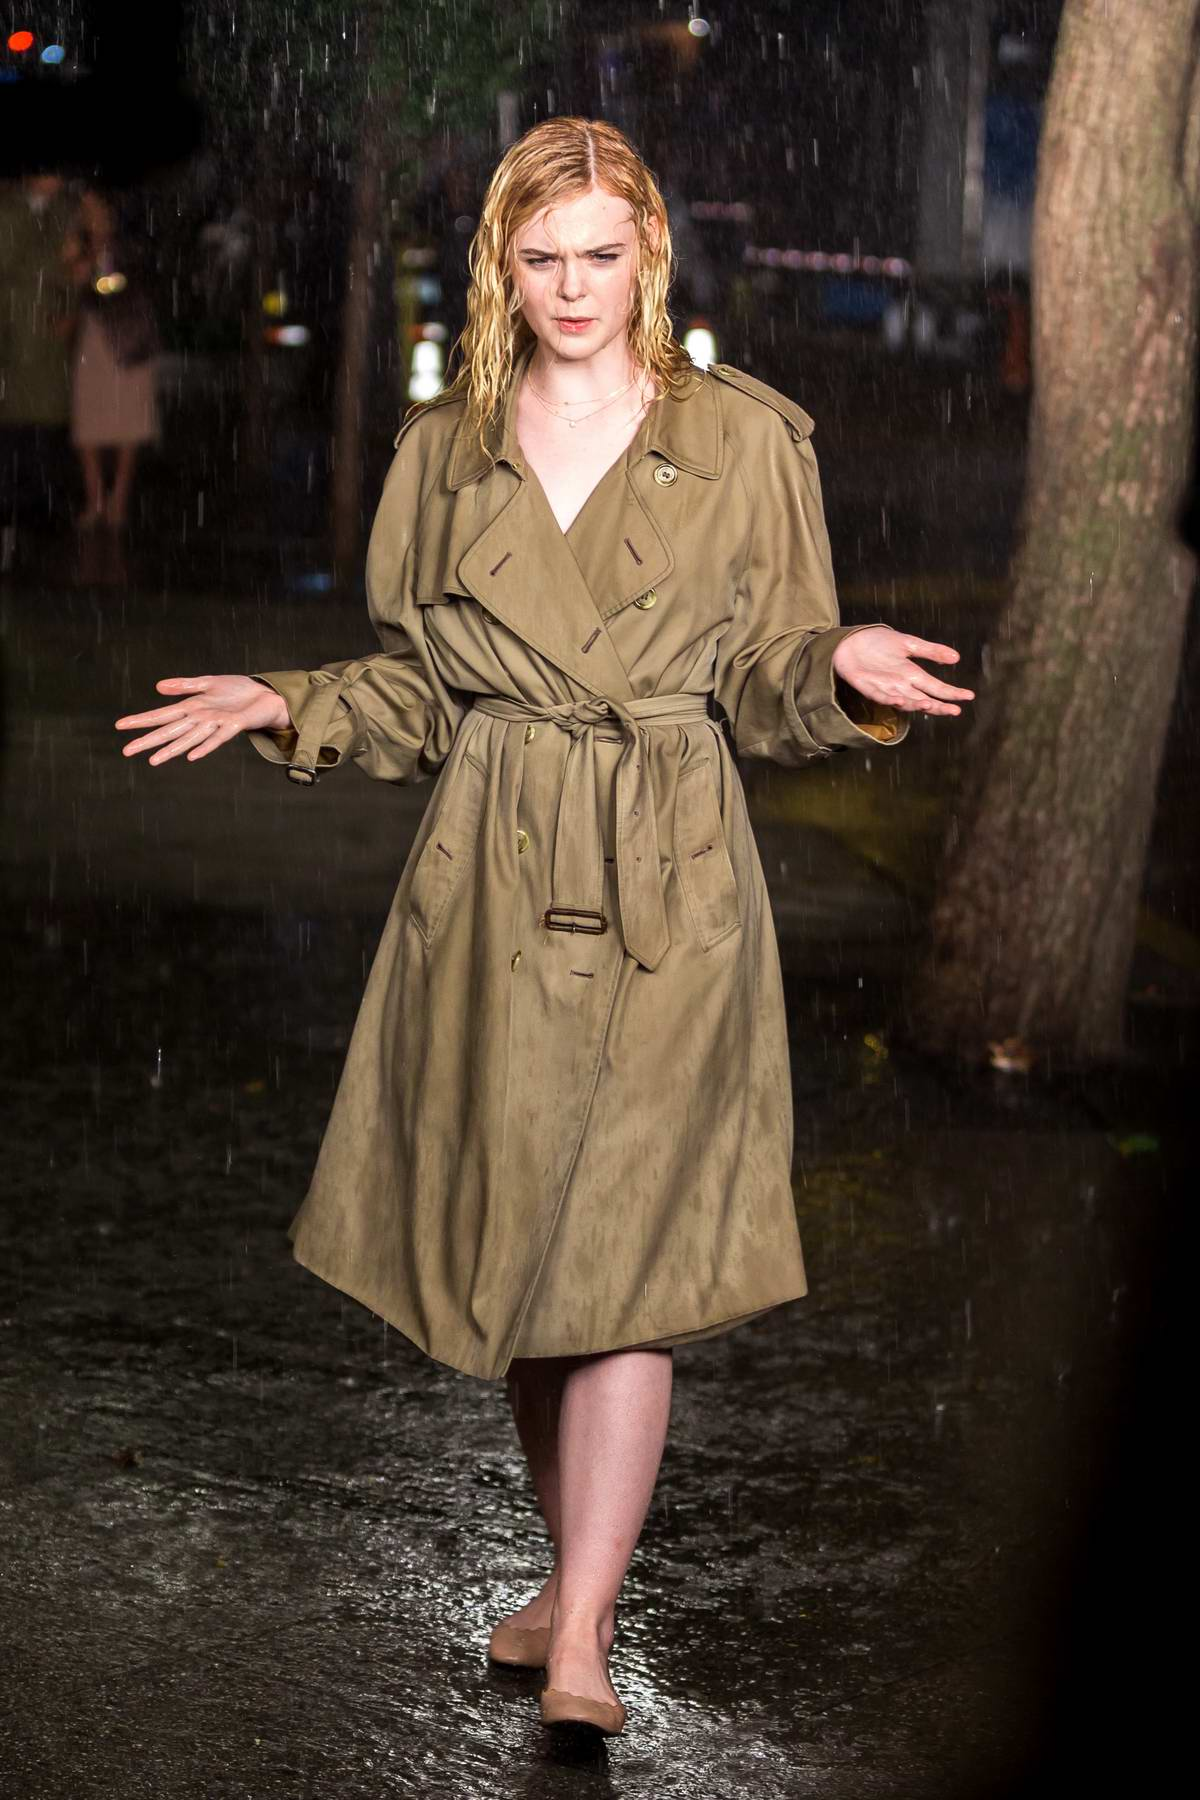 Elle Fanning shooting a rain scene on the set of untitled Woody Allen project in New York